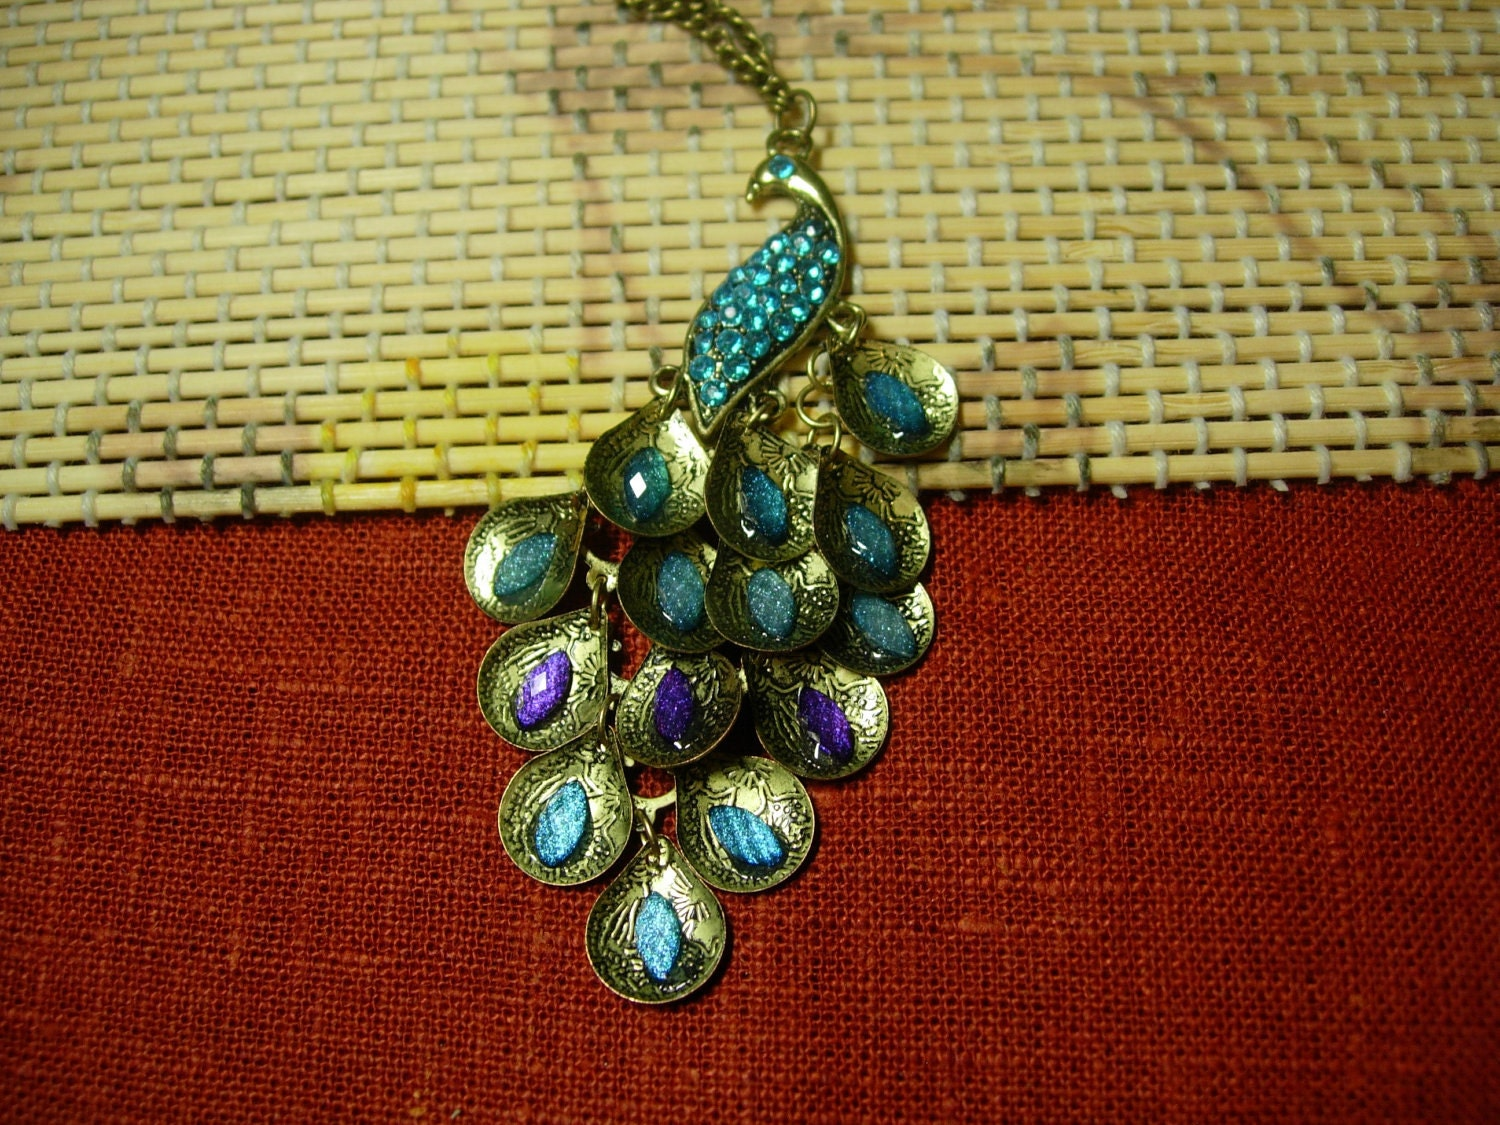 Peacock Necklace Fashion Antique Retro Bronze Peacock Dewdrop Rhinstone Long Chain Necklace